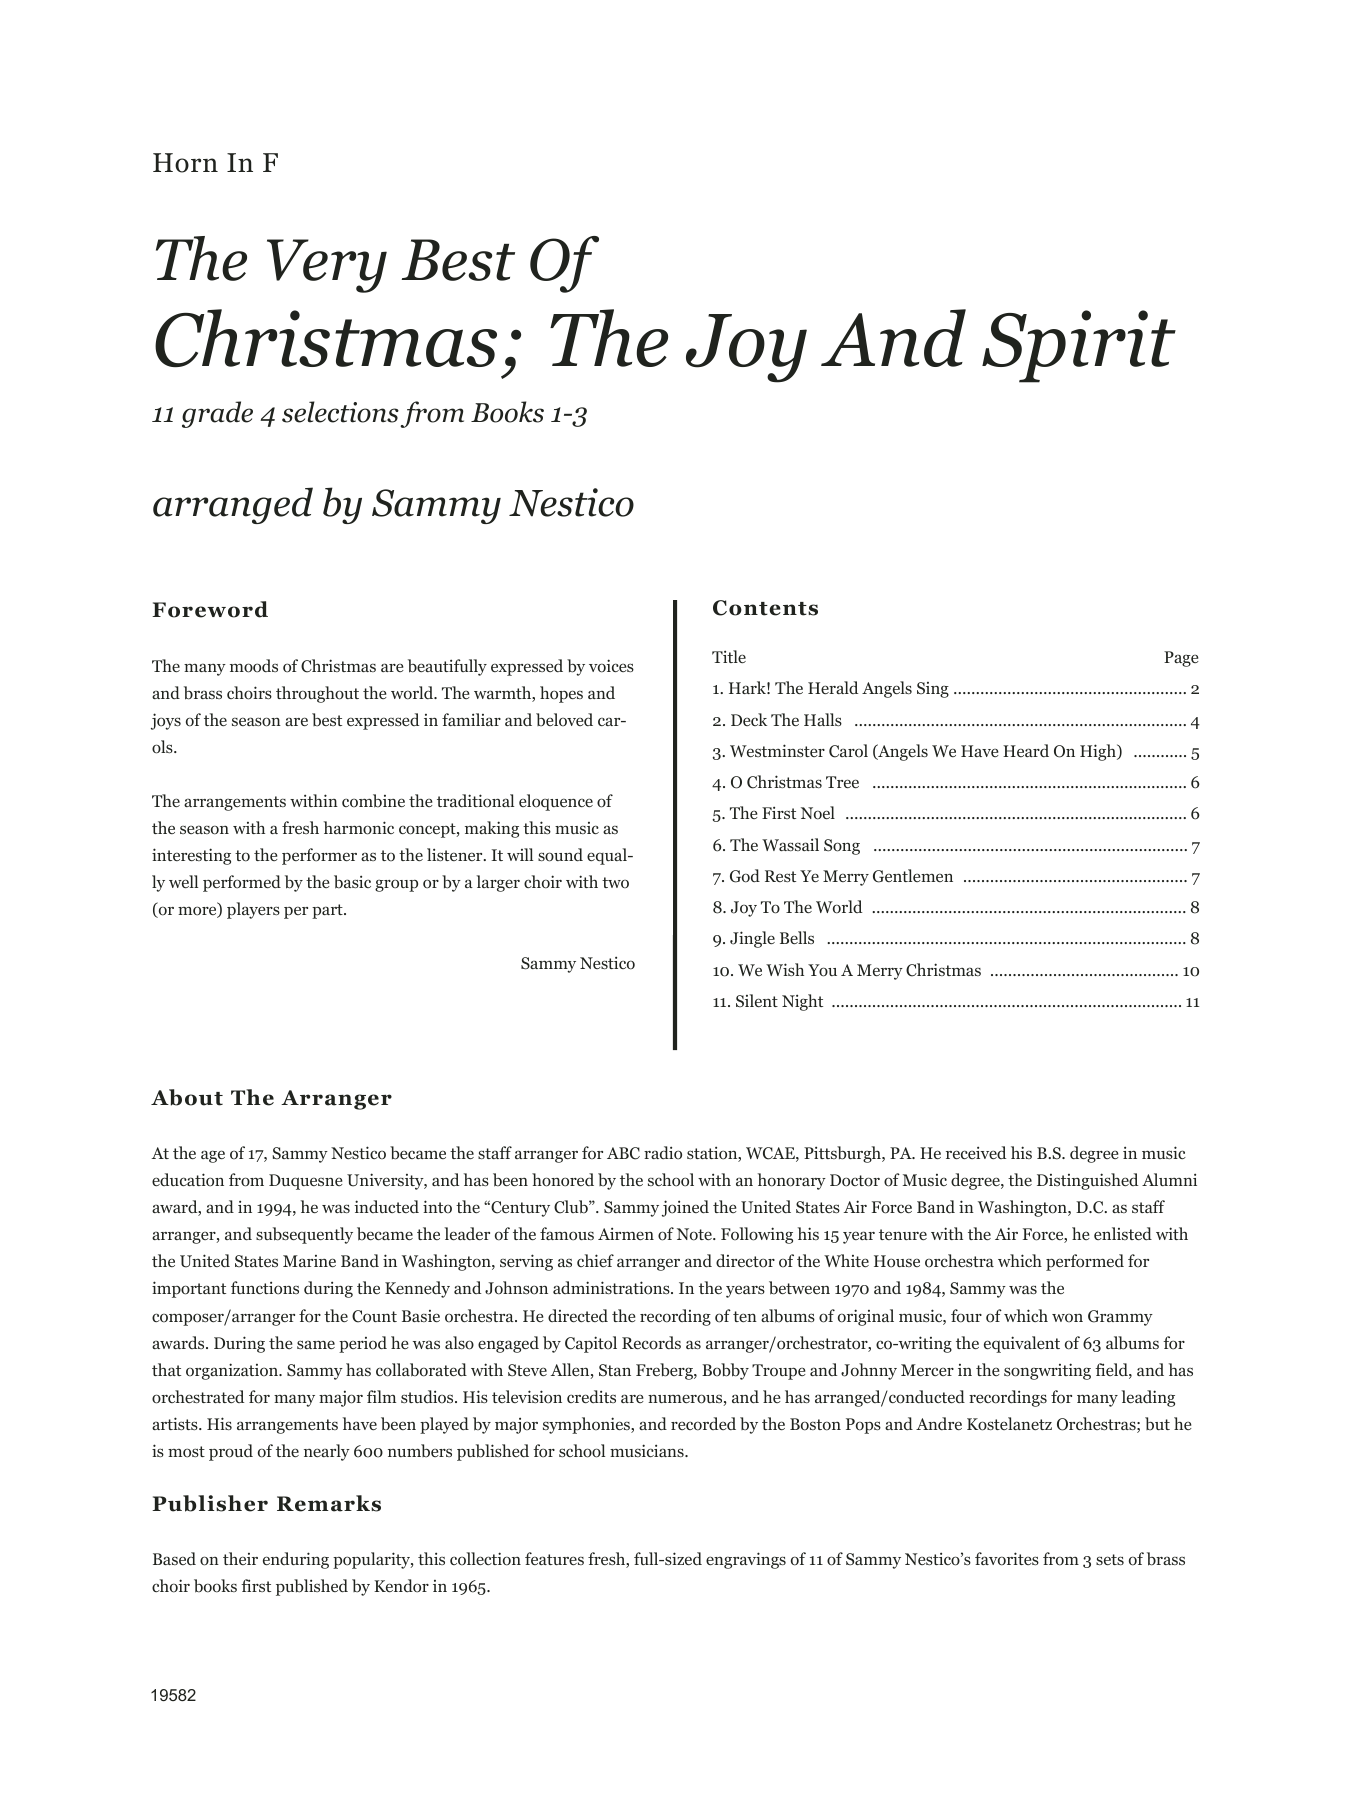 Very Best Of Christmas; The Joy And Spirit (Books 1-3) - Horn in F Sheet Music